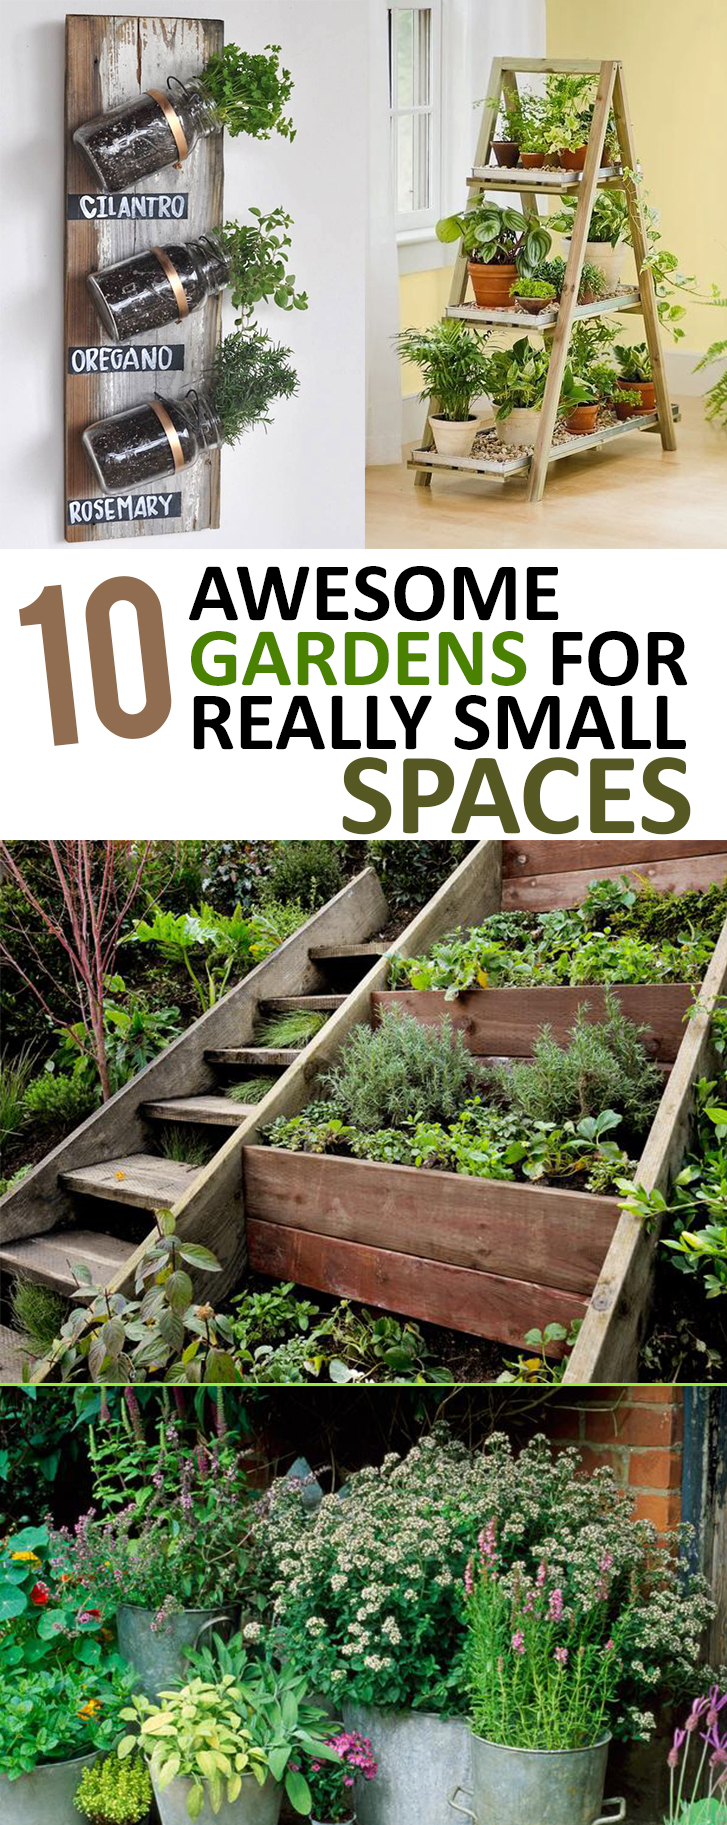 10 awesome gardens for really small spaces for Outdoor garden ideas for small spaces